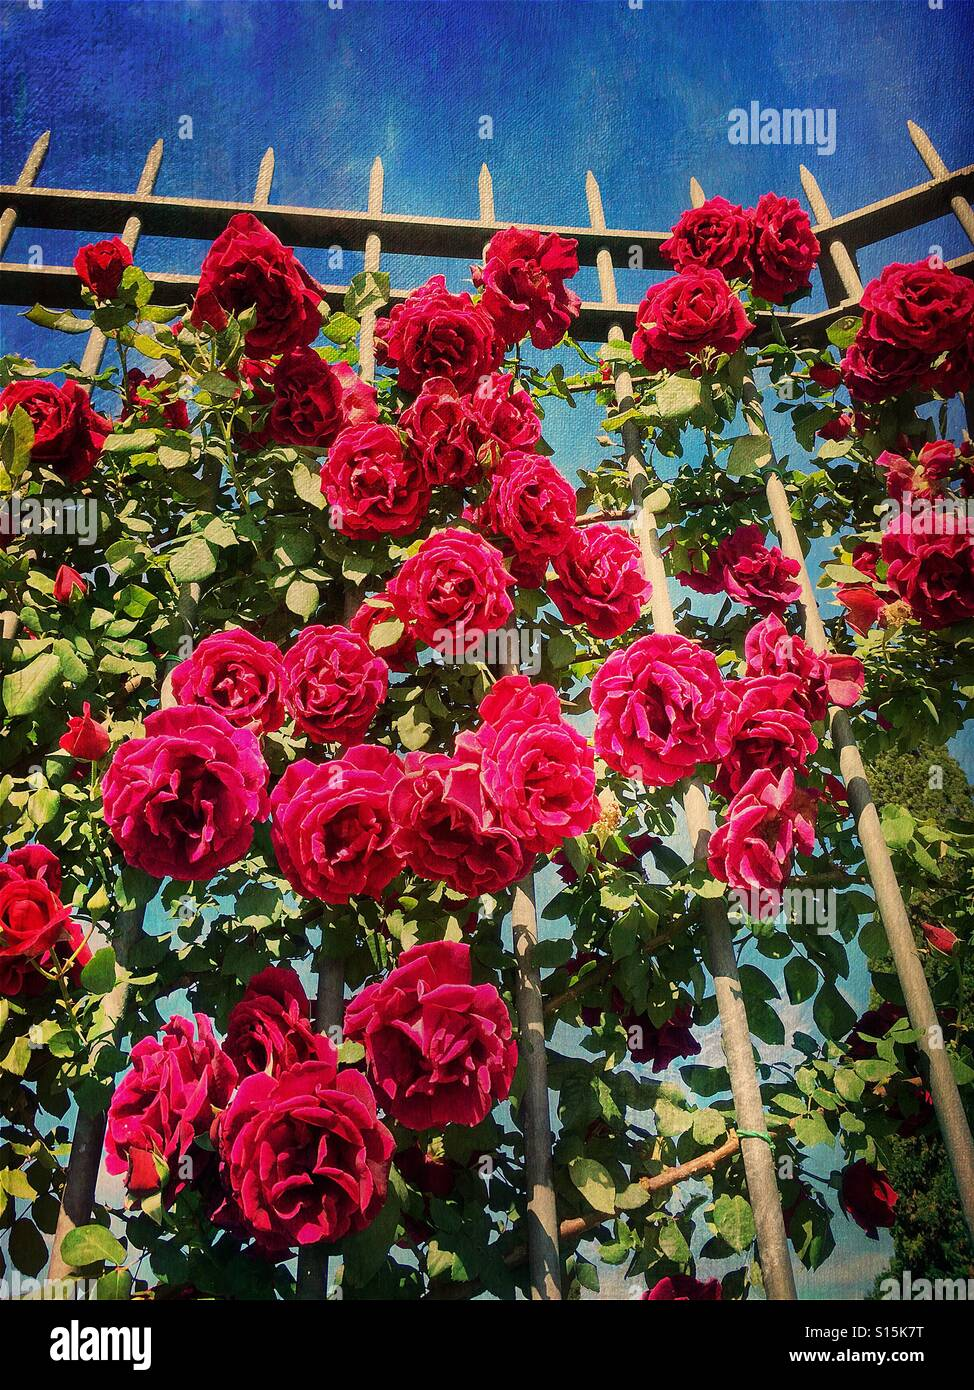 Beautiful red roses at the Roseto Comunale garden in Ripa, Rome, Italy. Vintage paper texture overlay. Stock Photo